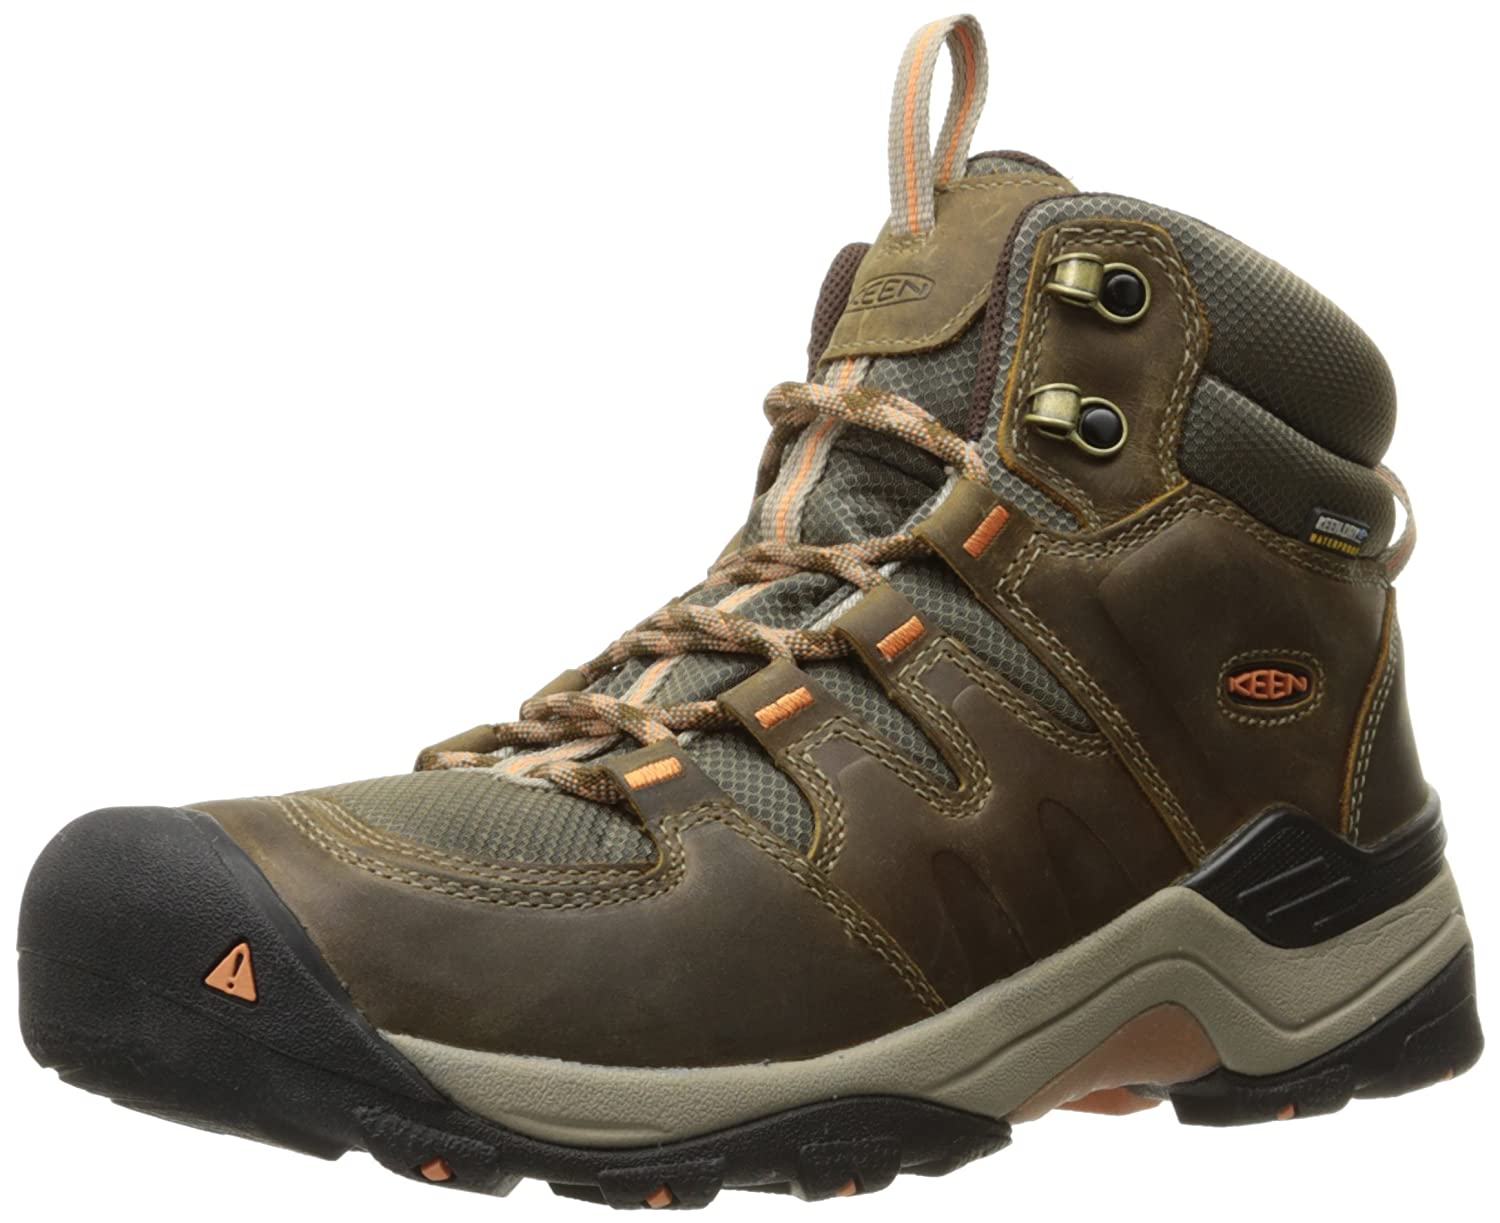 KEEN Women's B(M) Gypsum Ii Mid Wp-w Boot B019FD00EI 5 B(M) Women's US|Corn Stock/Gold Coral 6f1c0e